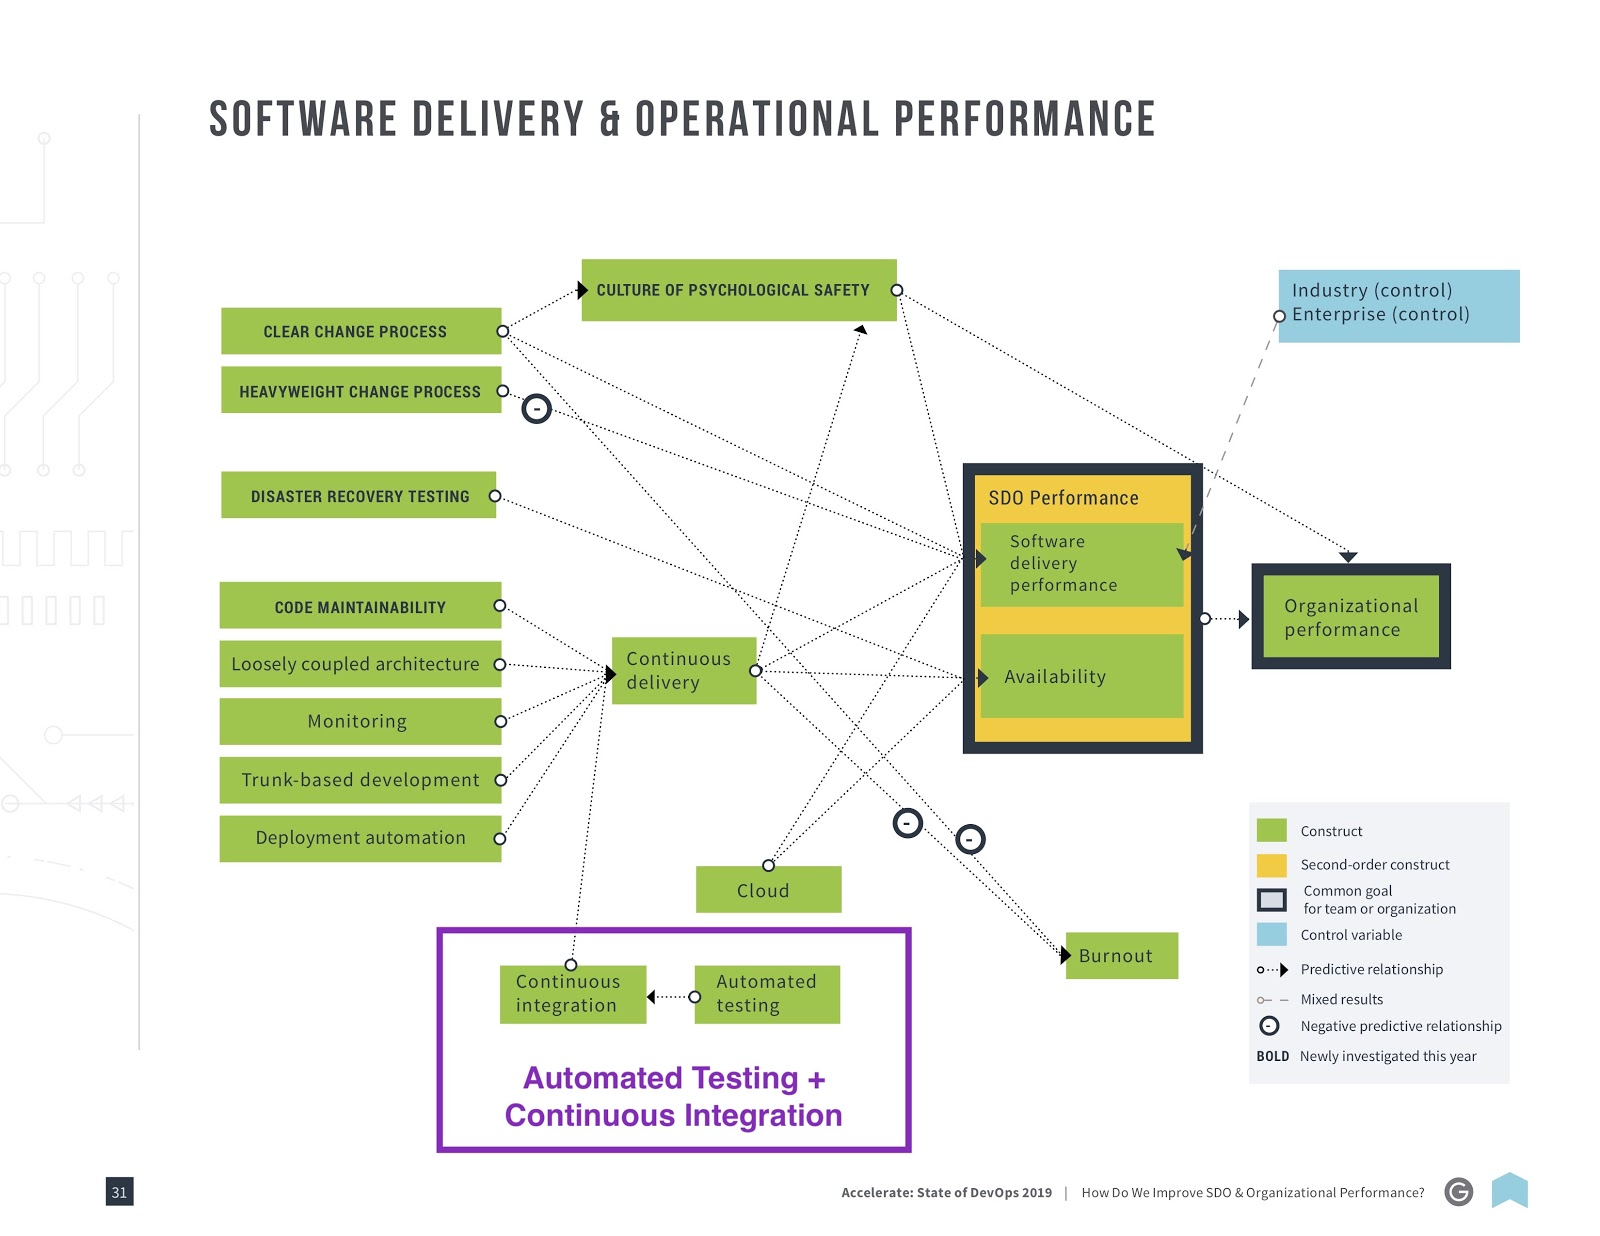 Software delivery and performance